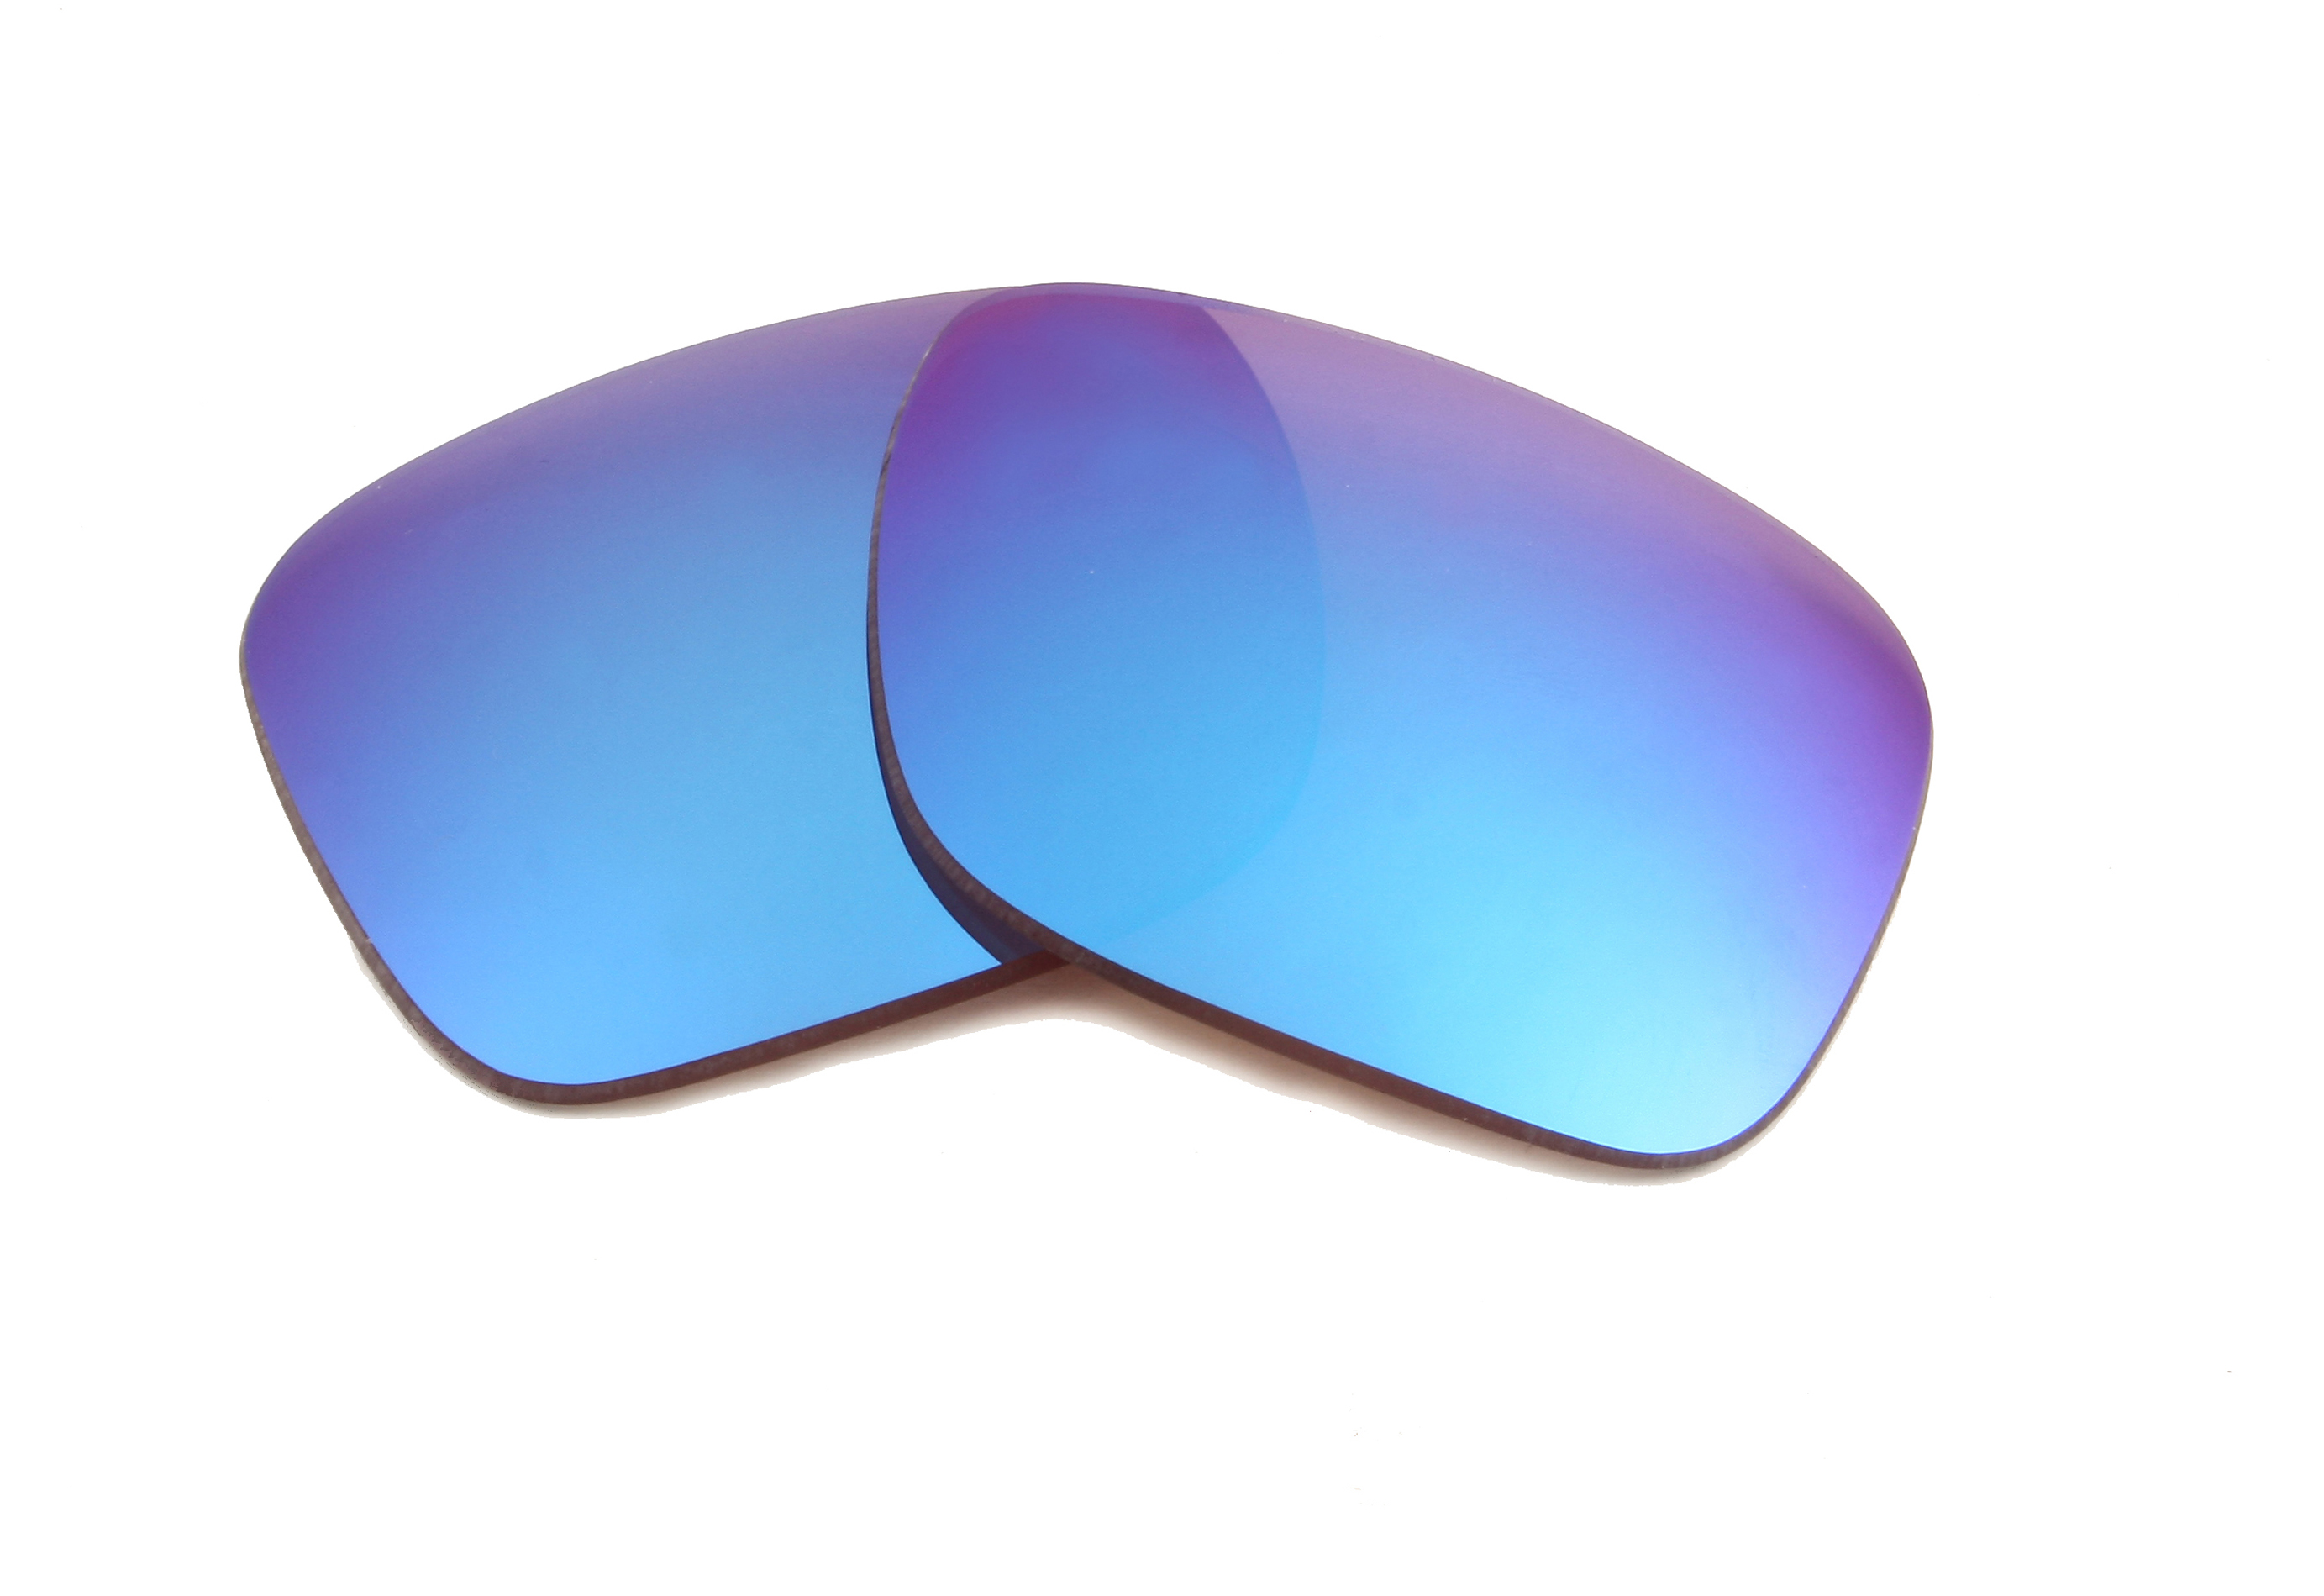 51b17d4642 Image is loading Cyrus-Replacement-Lenses-Polarized-Blue-Mirror-by-SEEK-